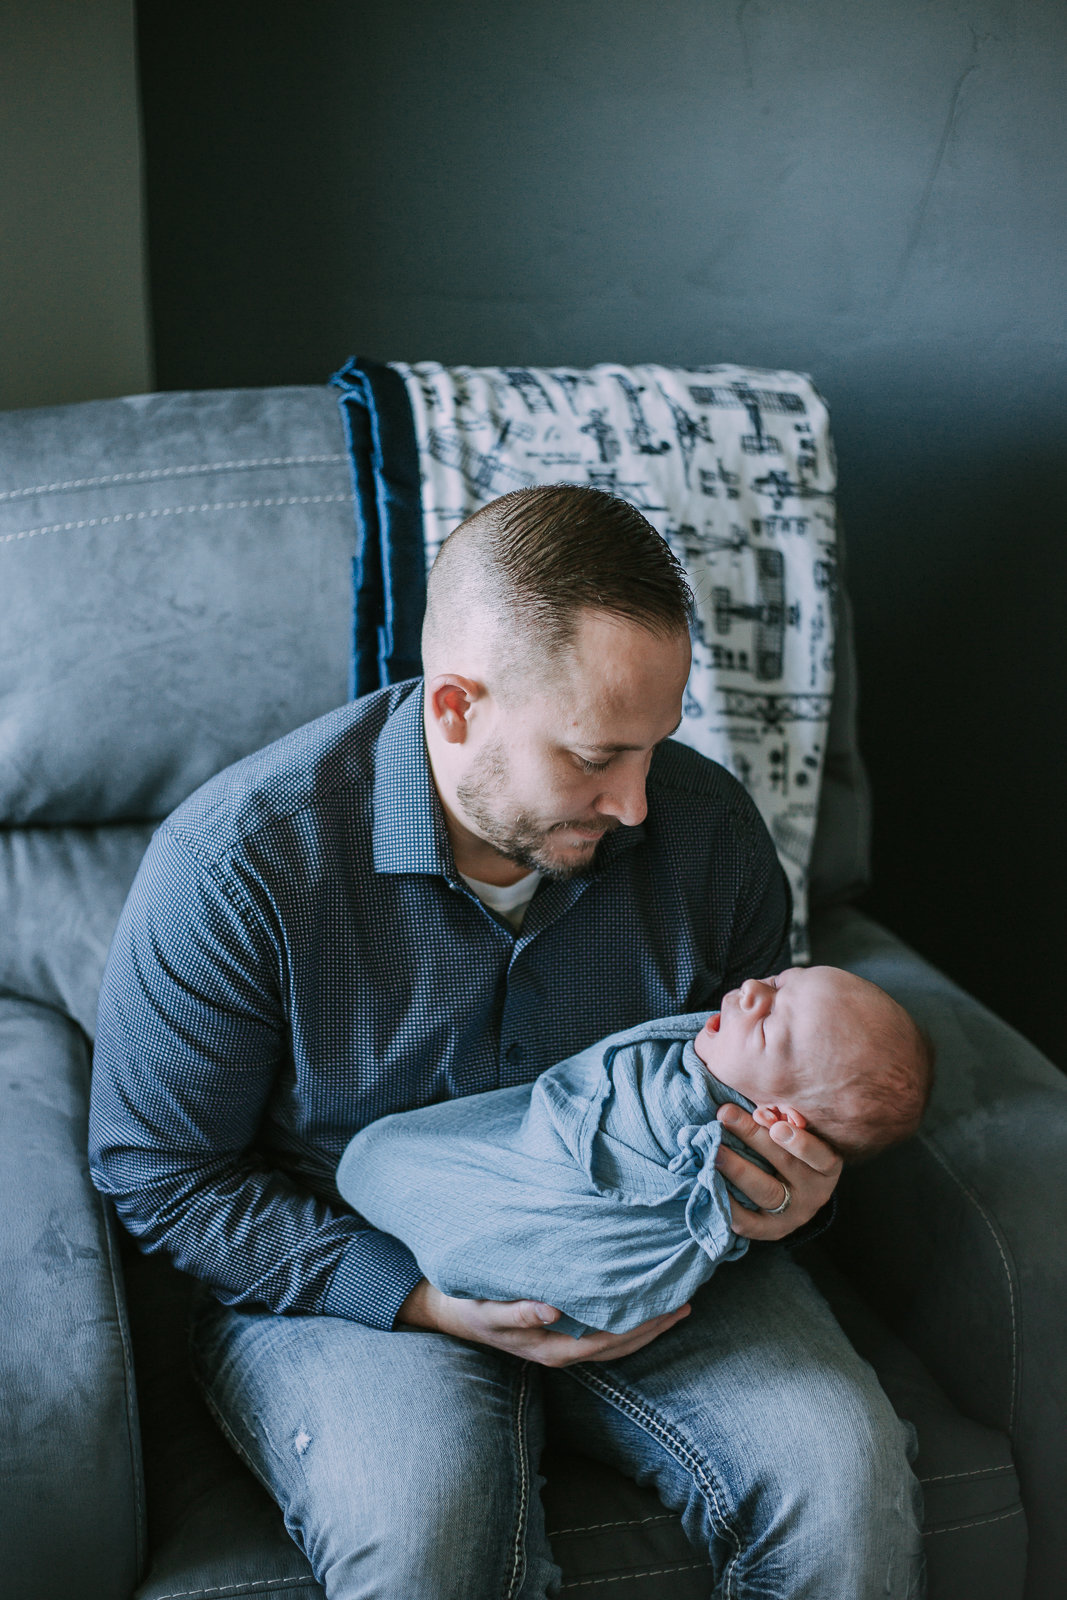 ogden-regional-hospital-birth-story-photography-videography-newborn-lifestyle-session-birth-love-story-6